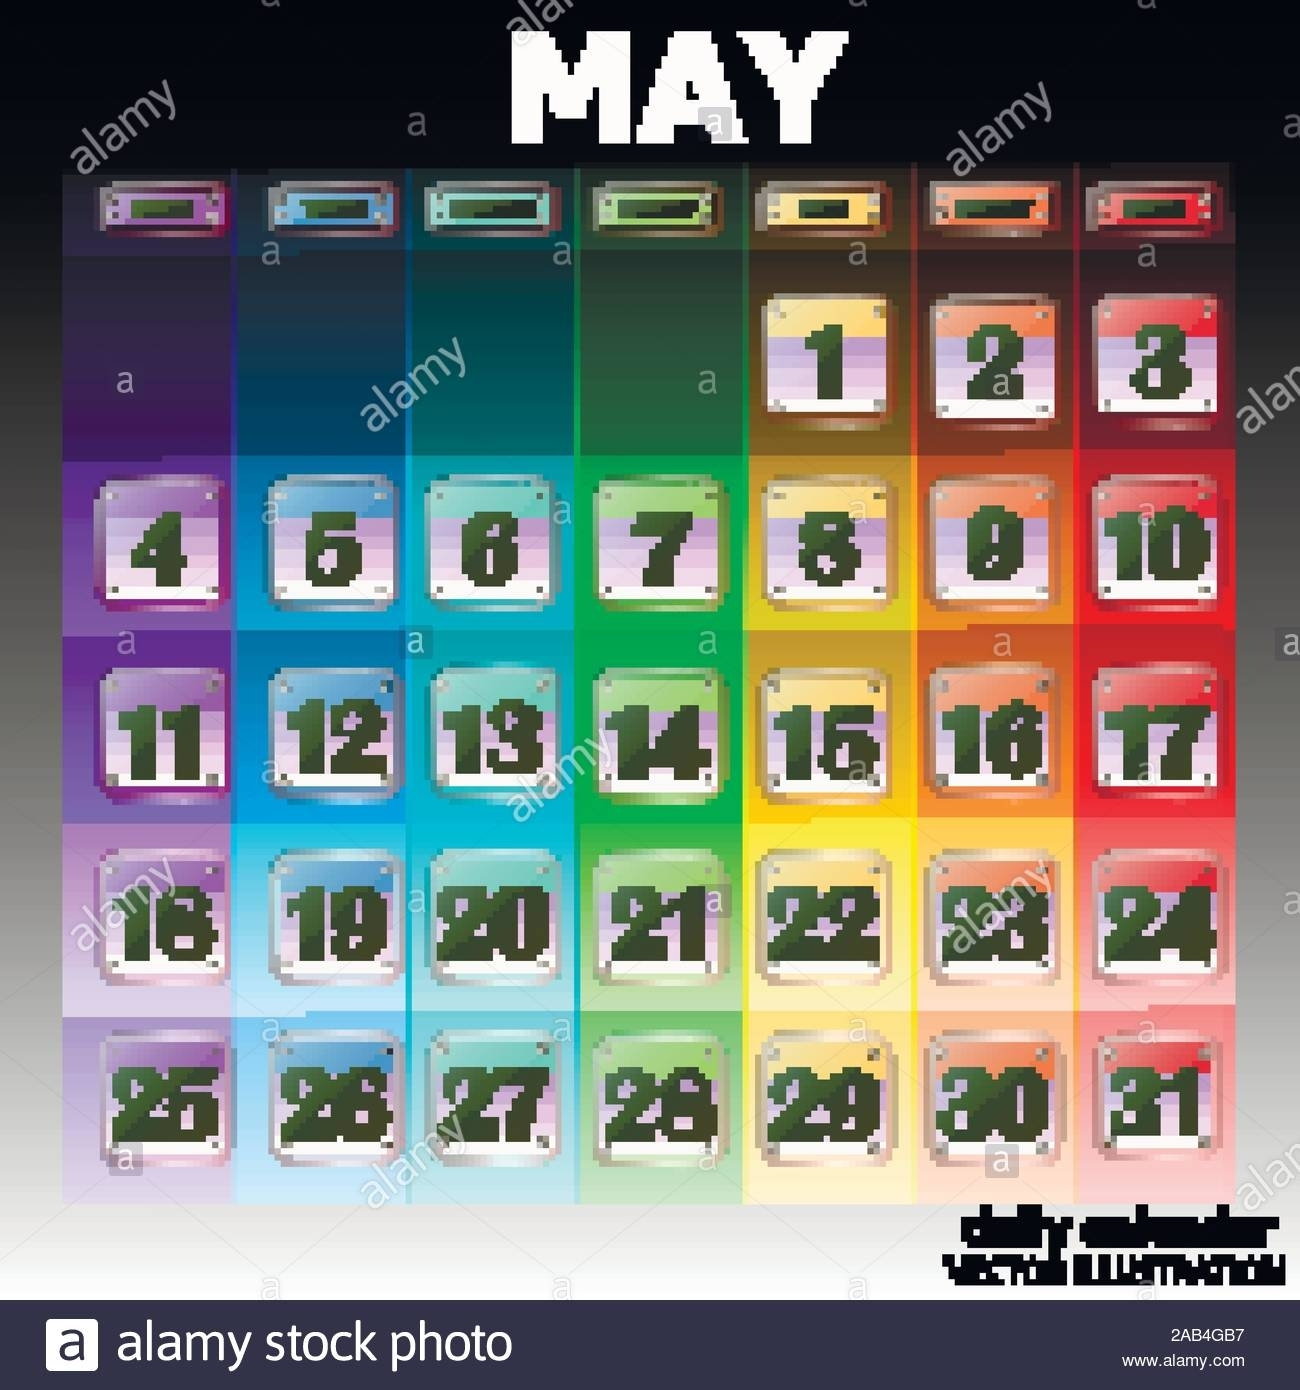 Colorful Calendar For May 2020 In English. Set Of Buttons throughout Special Days In Ht E Year 2020